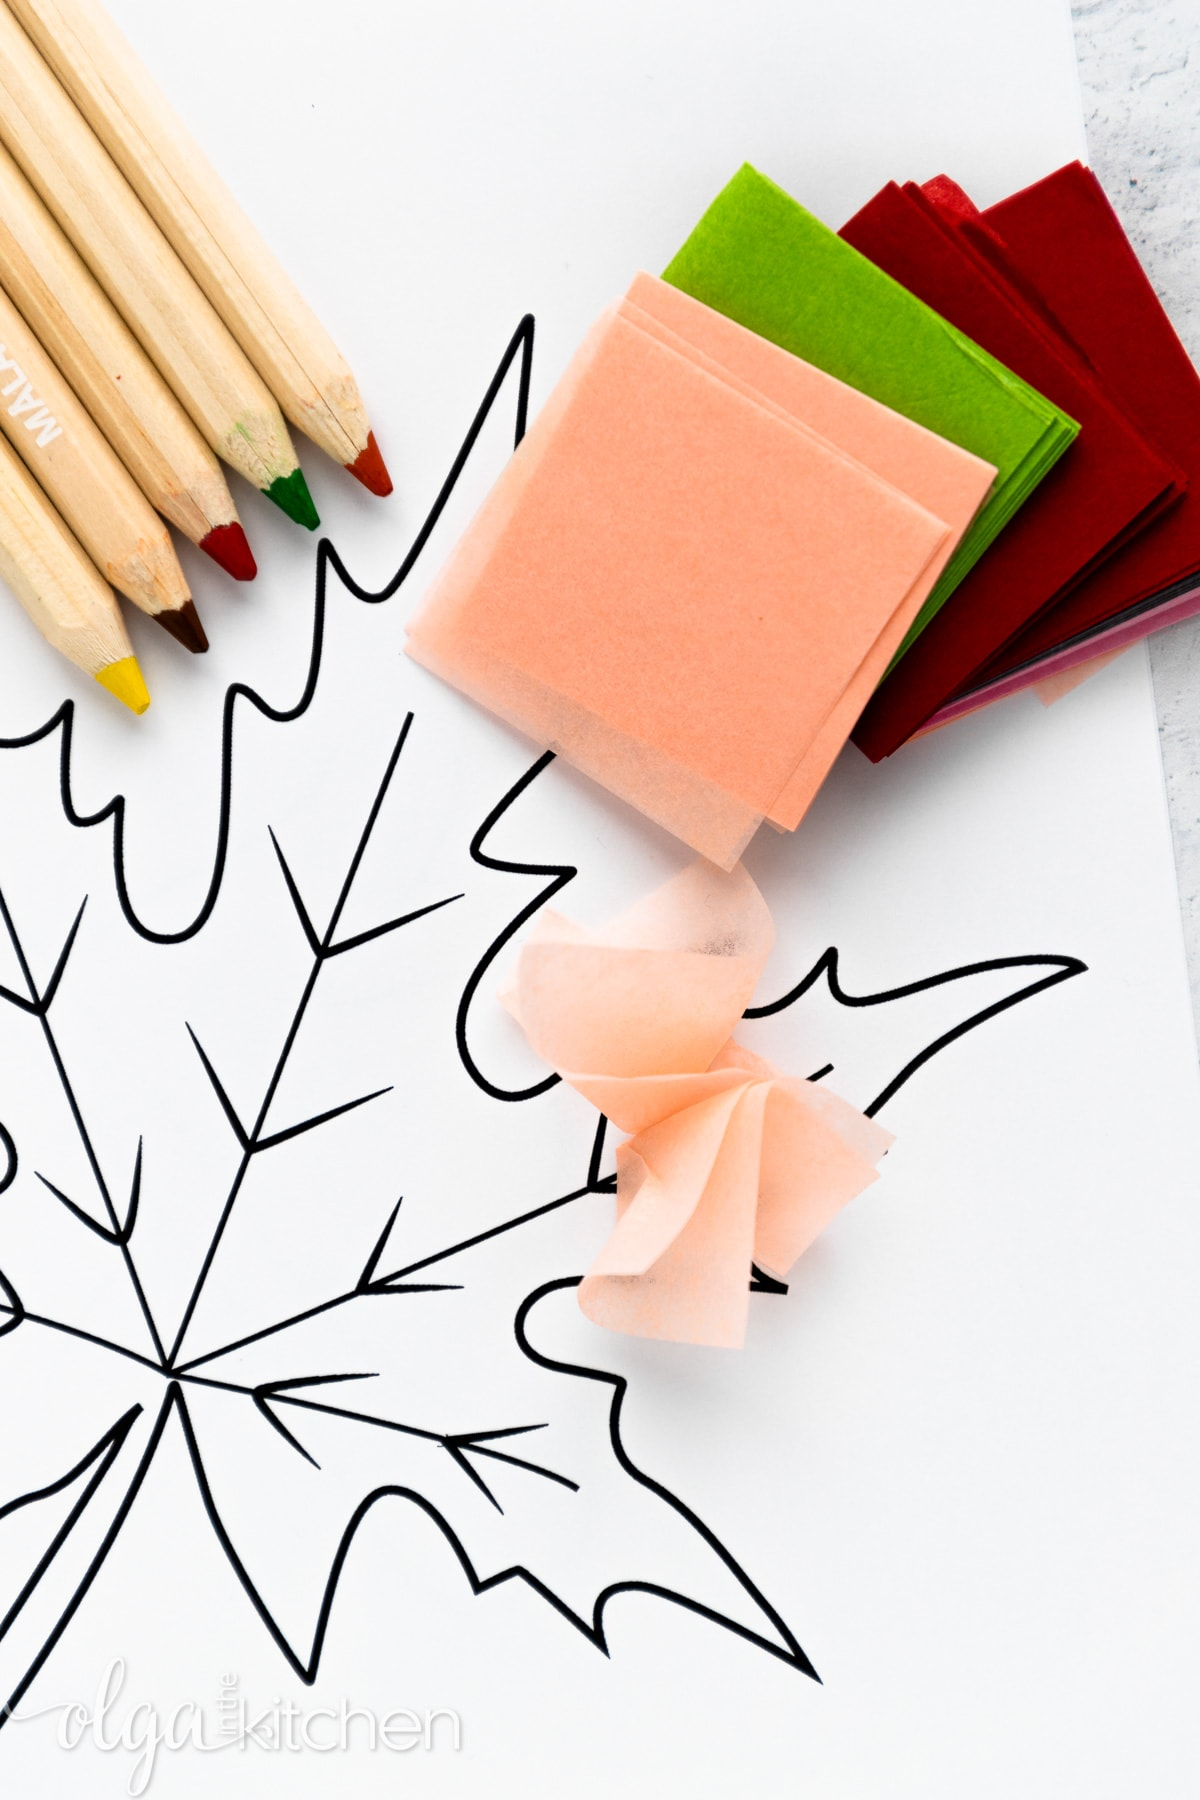 Print off these FREE printable simpleautumn leaves coloring pagesfor a fall rainy day or a simple activity with your kids! #printables #coloringpages #olgainthekitchen #fallactivity #fallcoloring #thanksgiving #crafts #diy